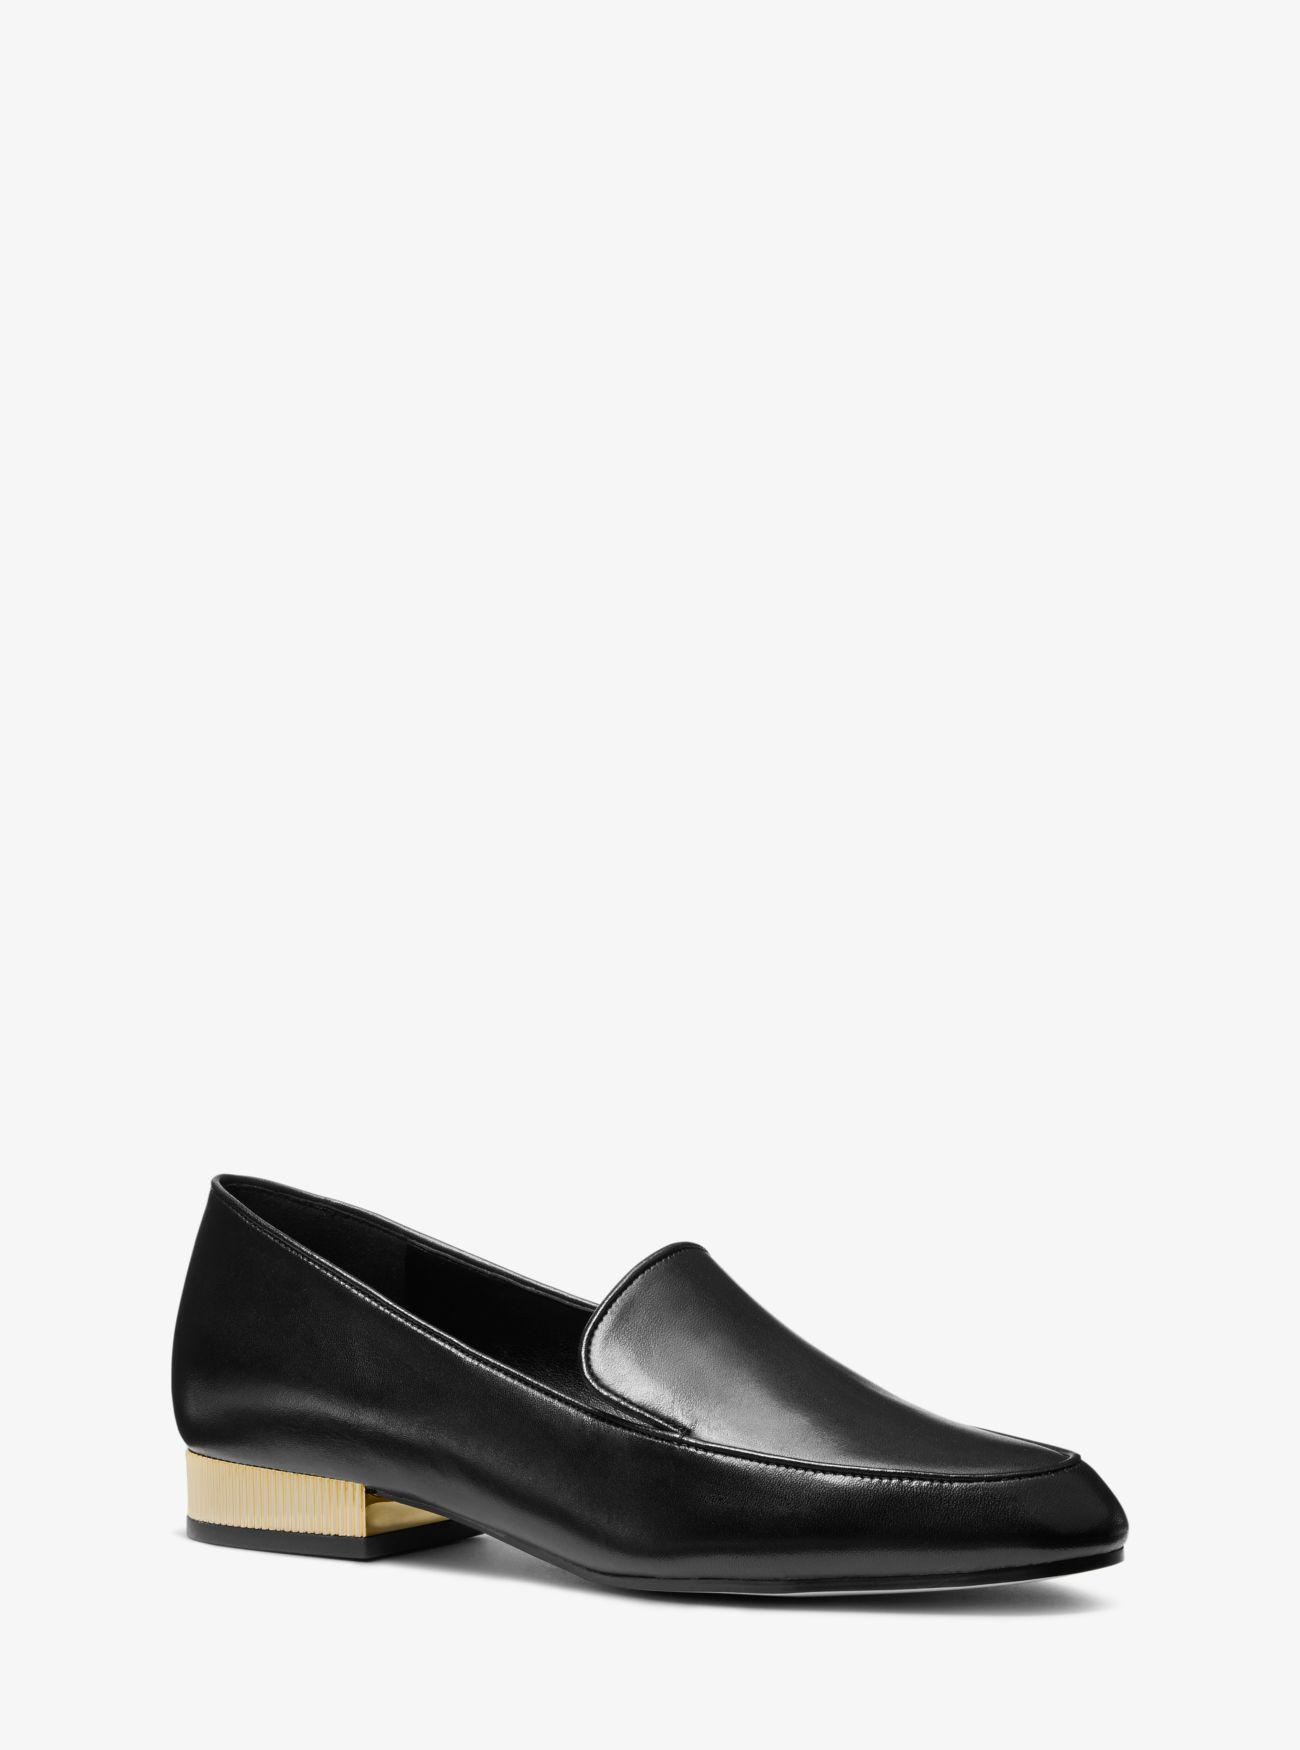 dd11895e626 Lyst - Michael Kors  valerie  Loafers in Black - Save 16%